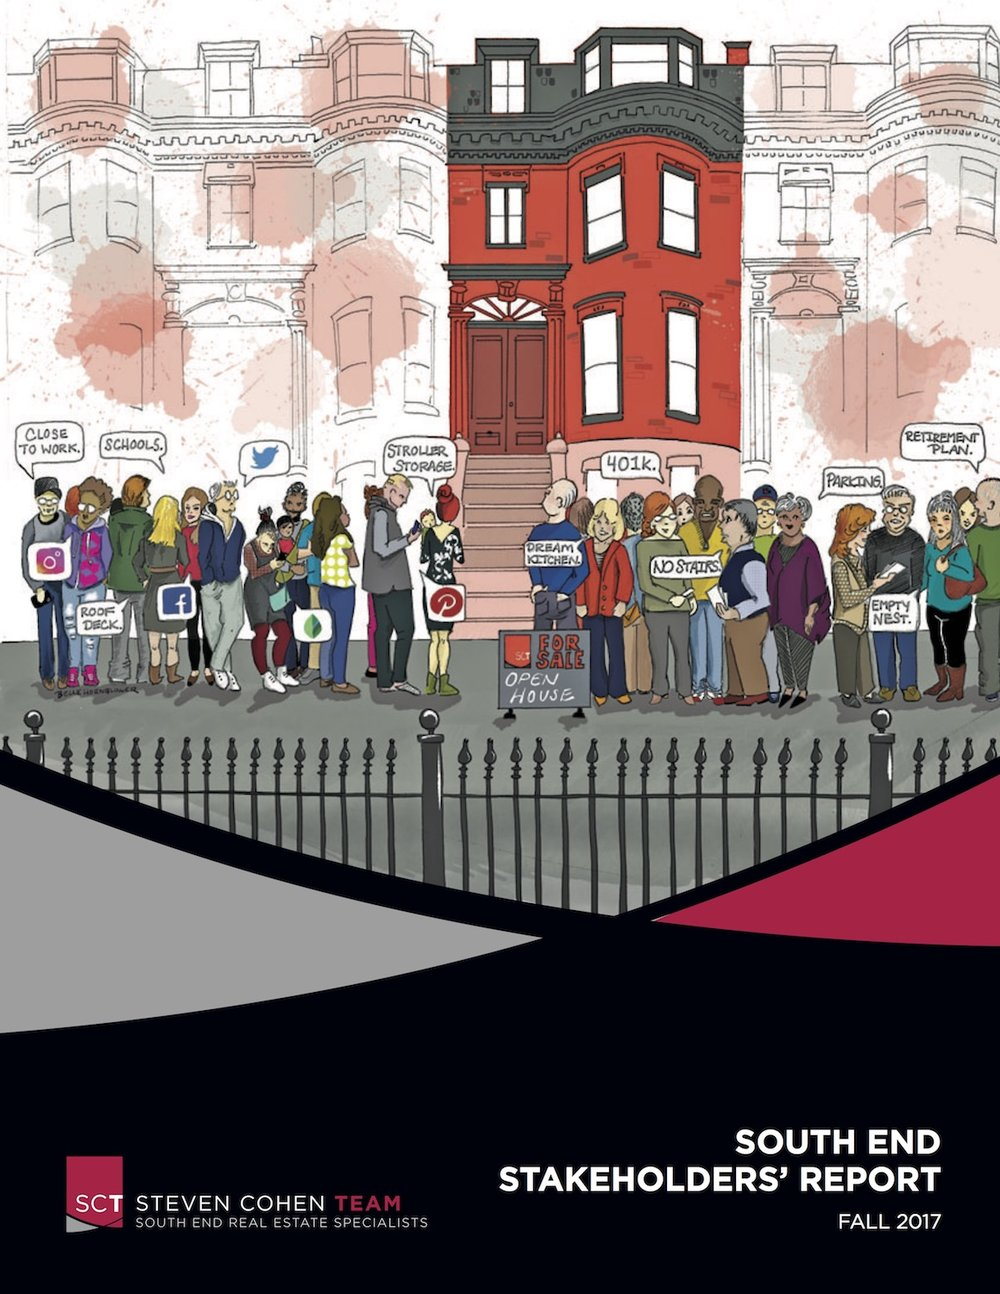 South End Stakeholders' Report Fall 2017.jpg